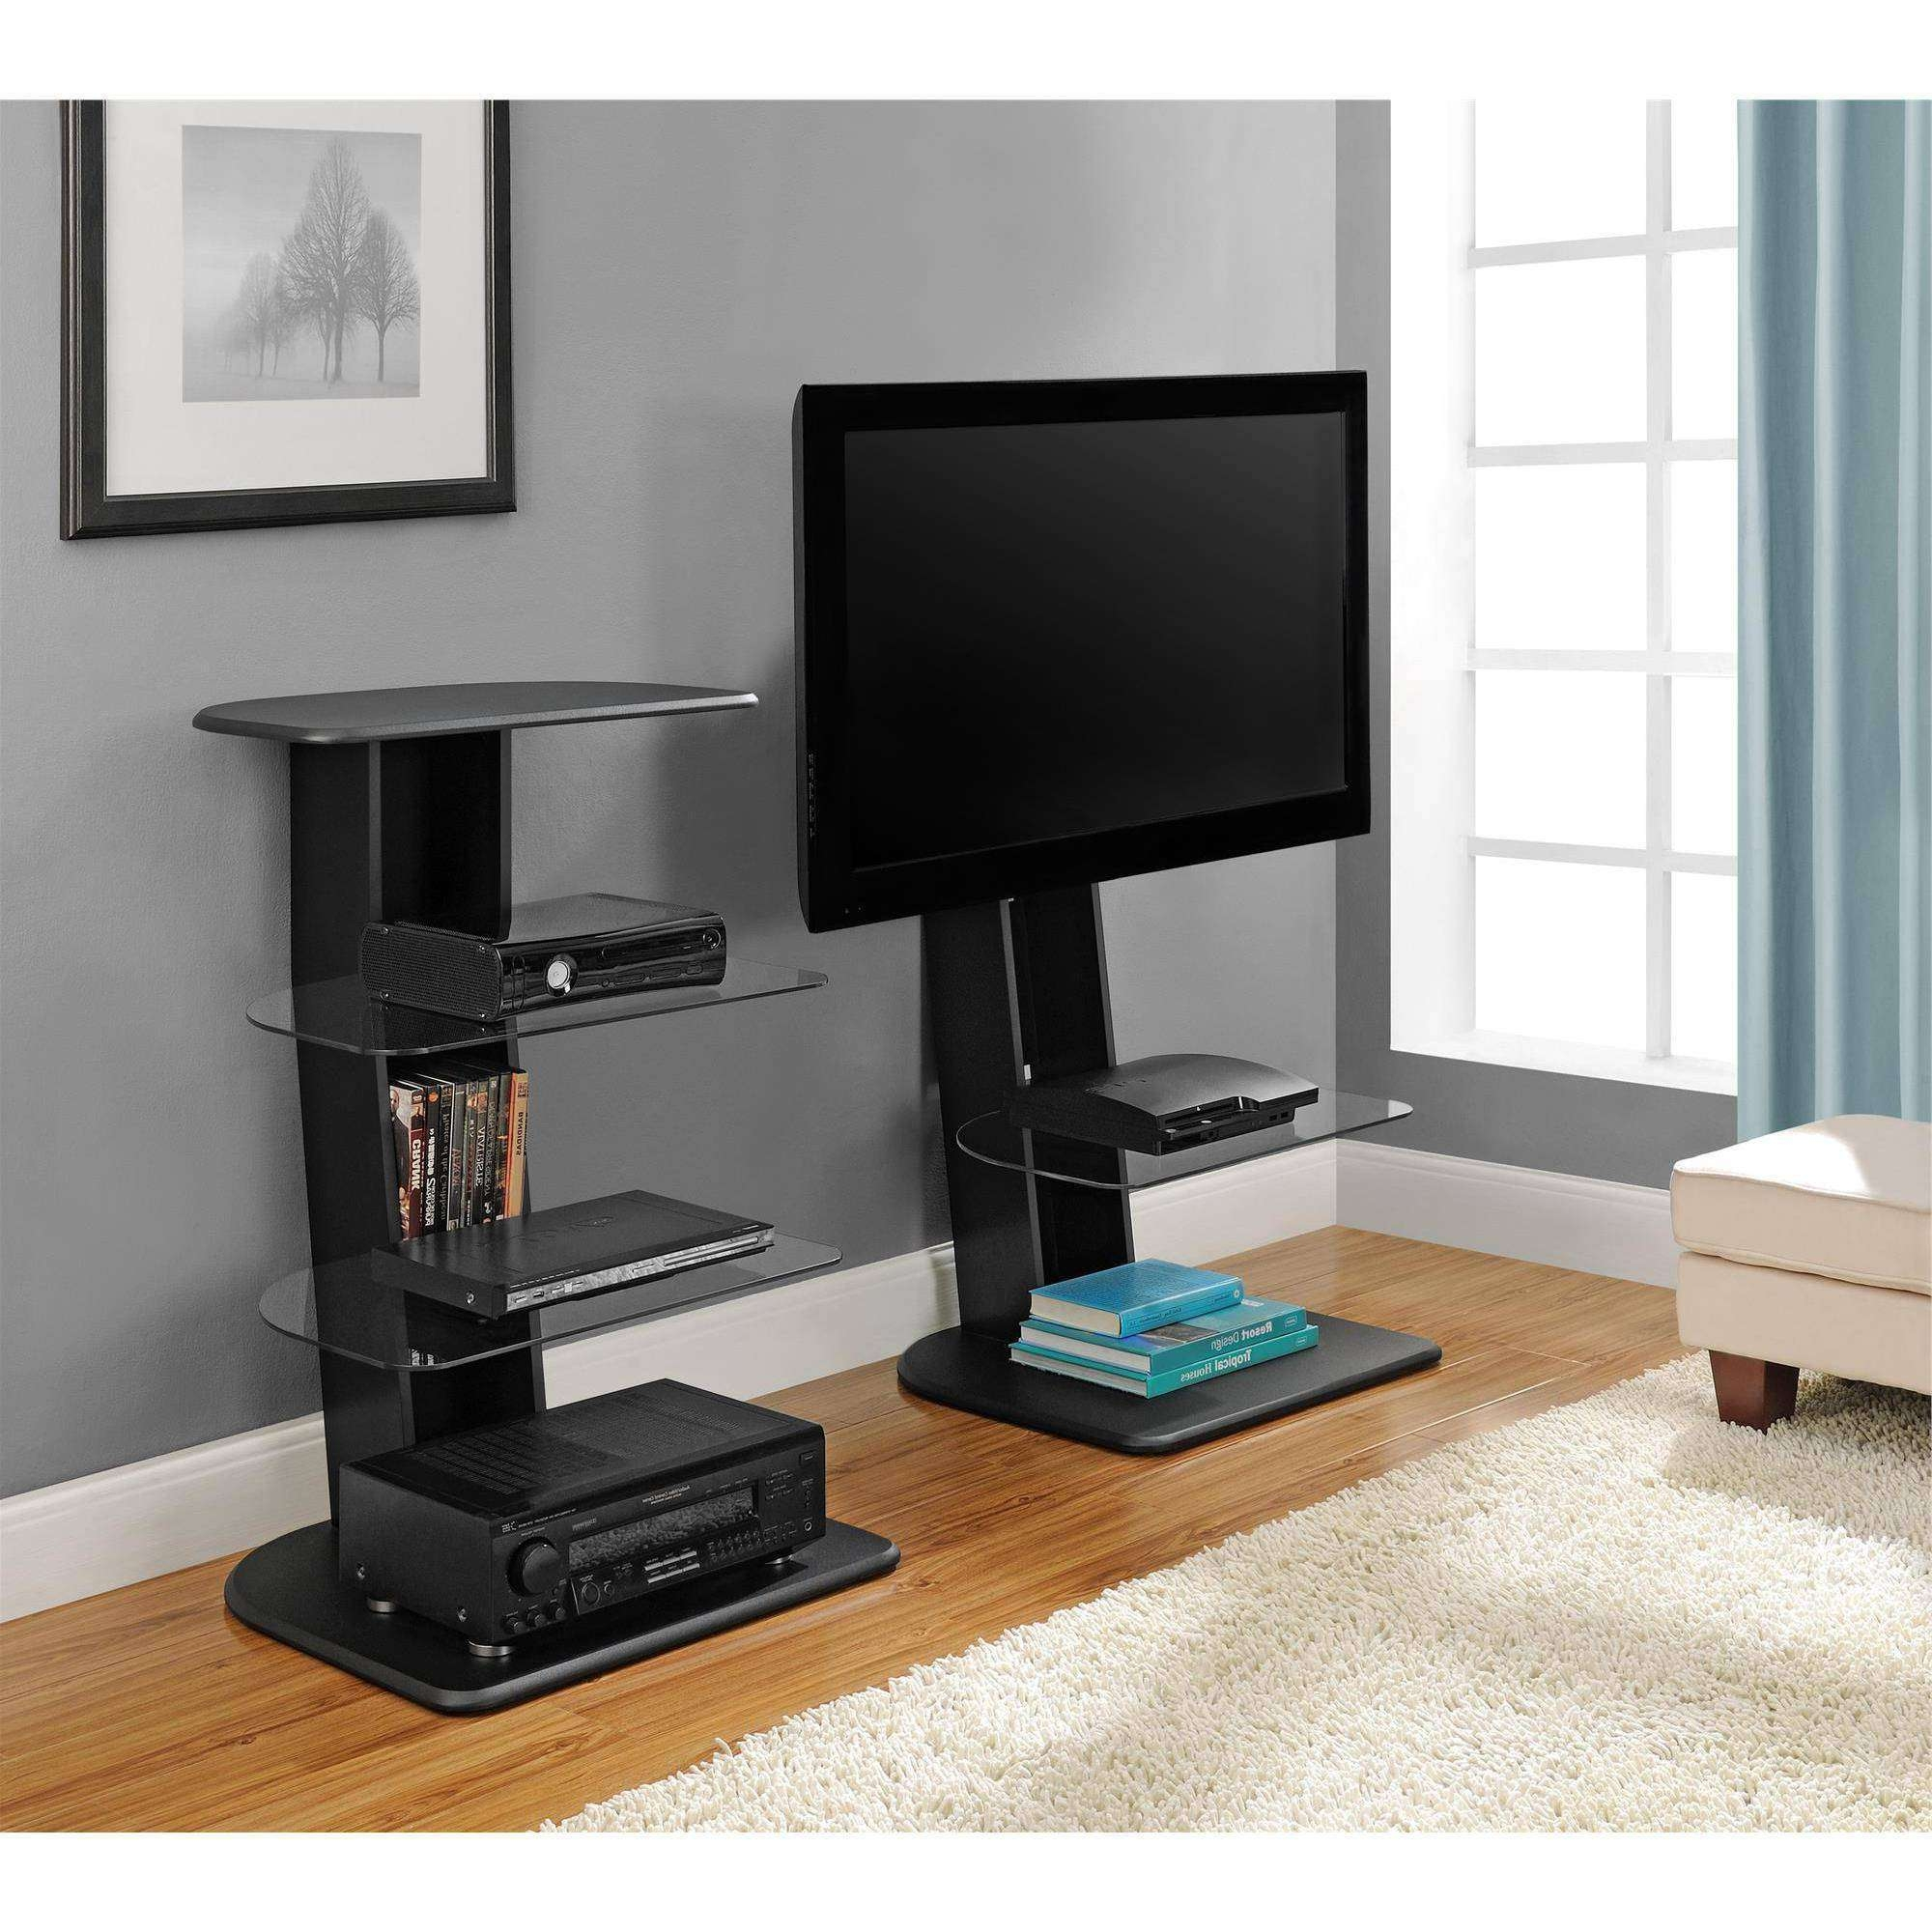 Good Slim Tv Stand 45 For Your Interior Decor Home With Slim Tv With Regard To Slim Tv Stands (View 9 of 20)